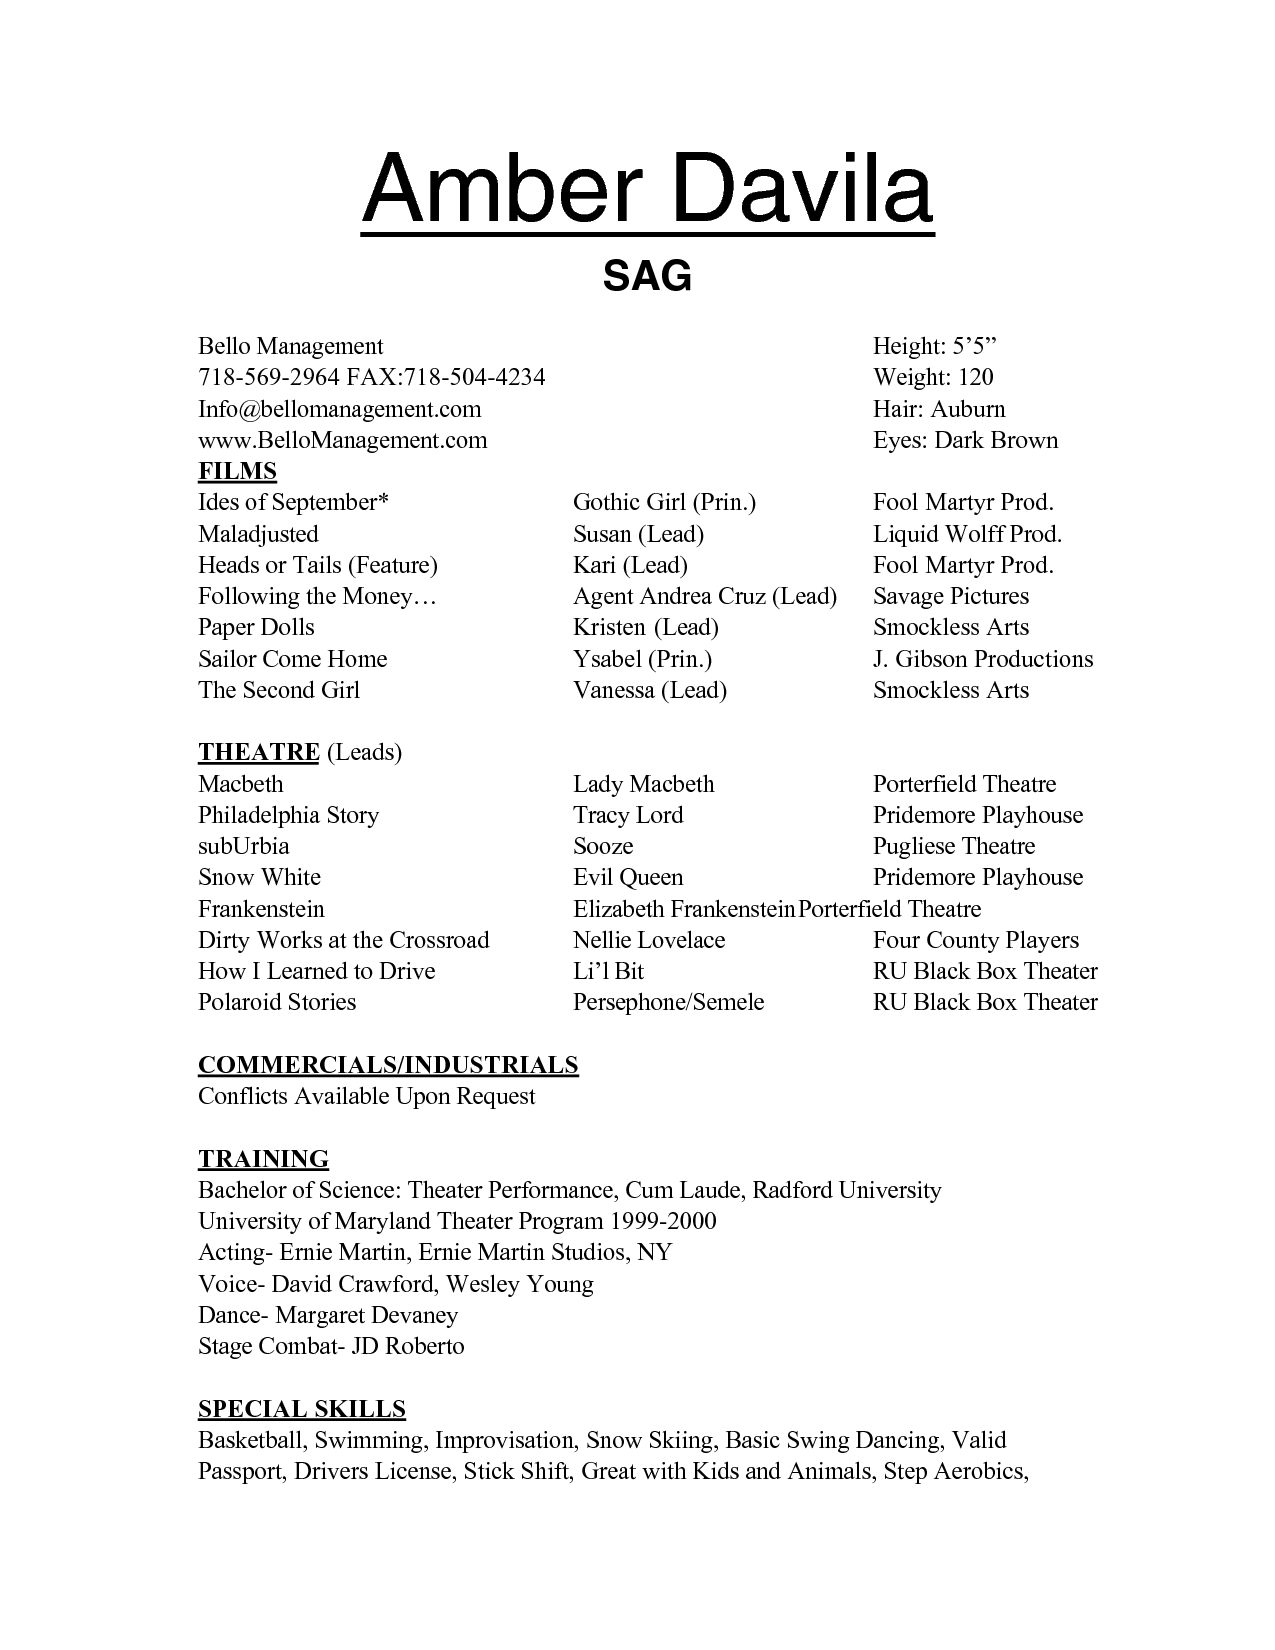 25 Awesome Acting Resume Template Best Resume Examples